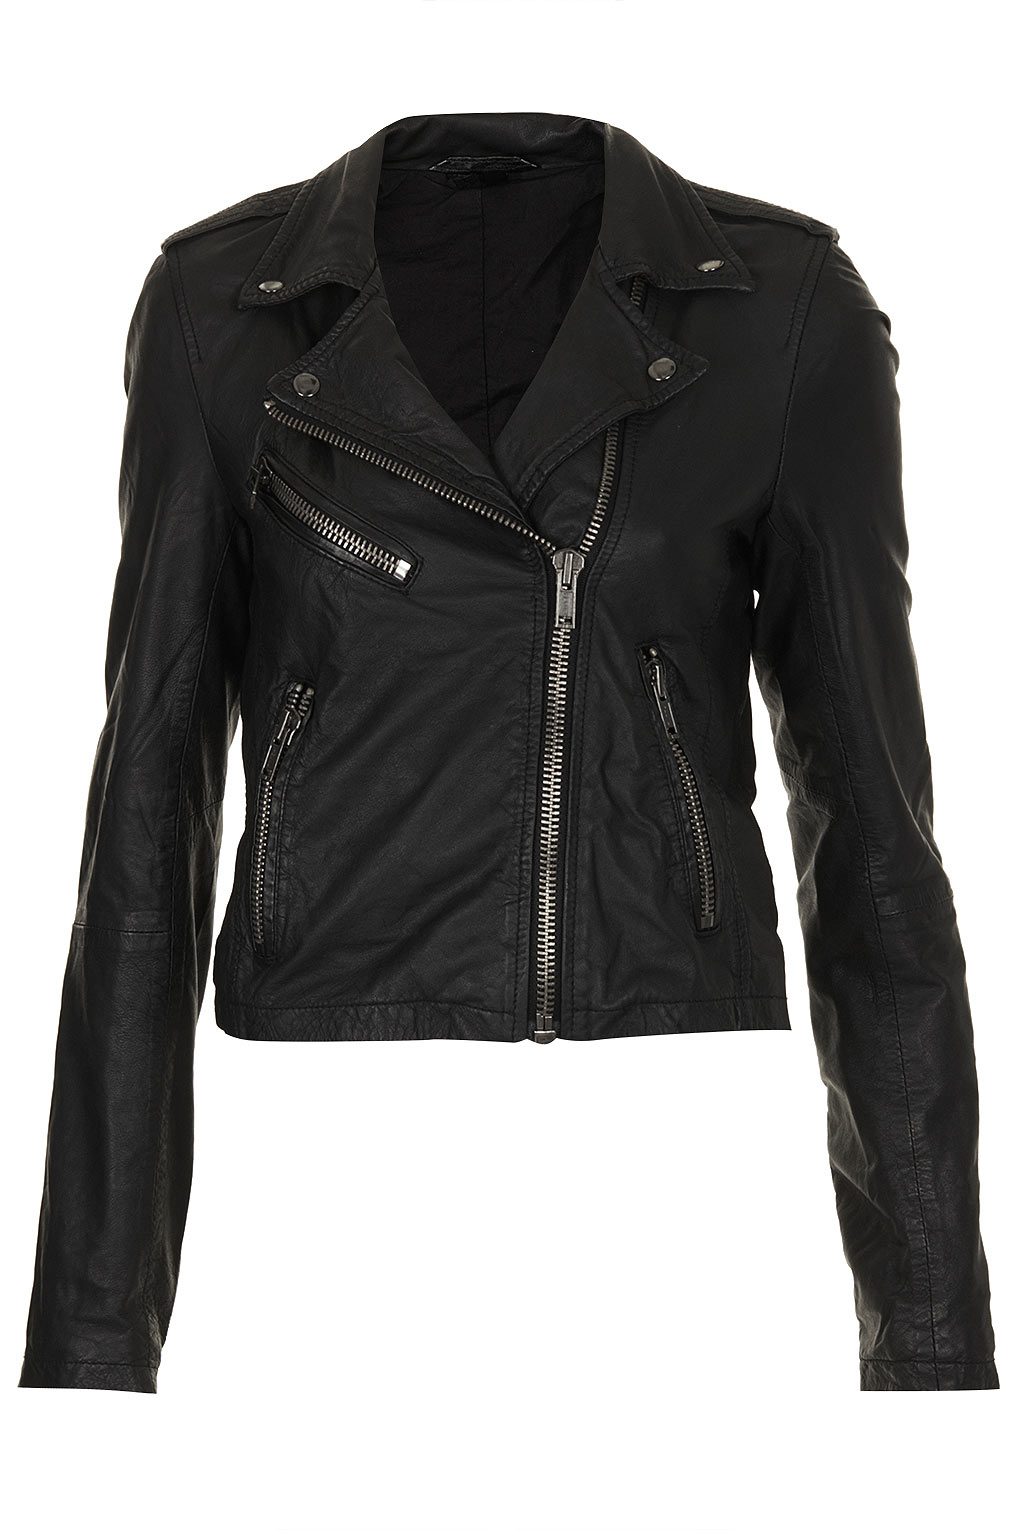 Shrunken leather biker jacket by boutique